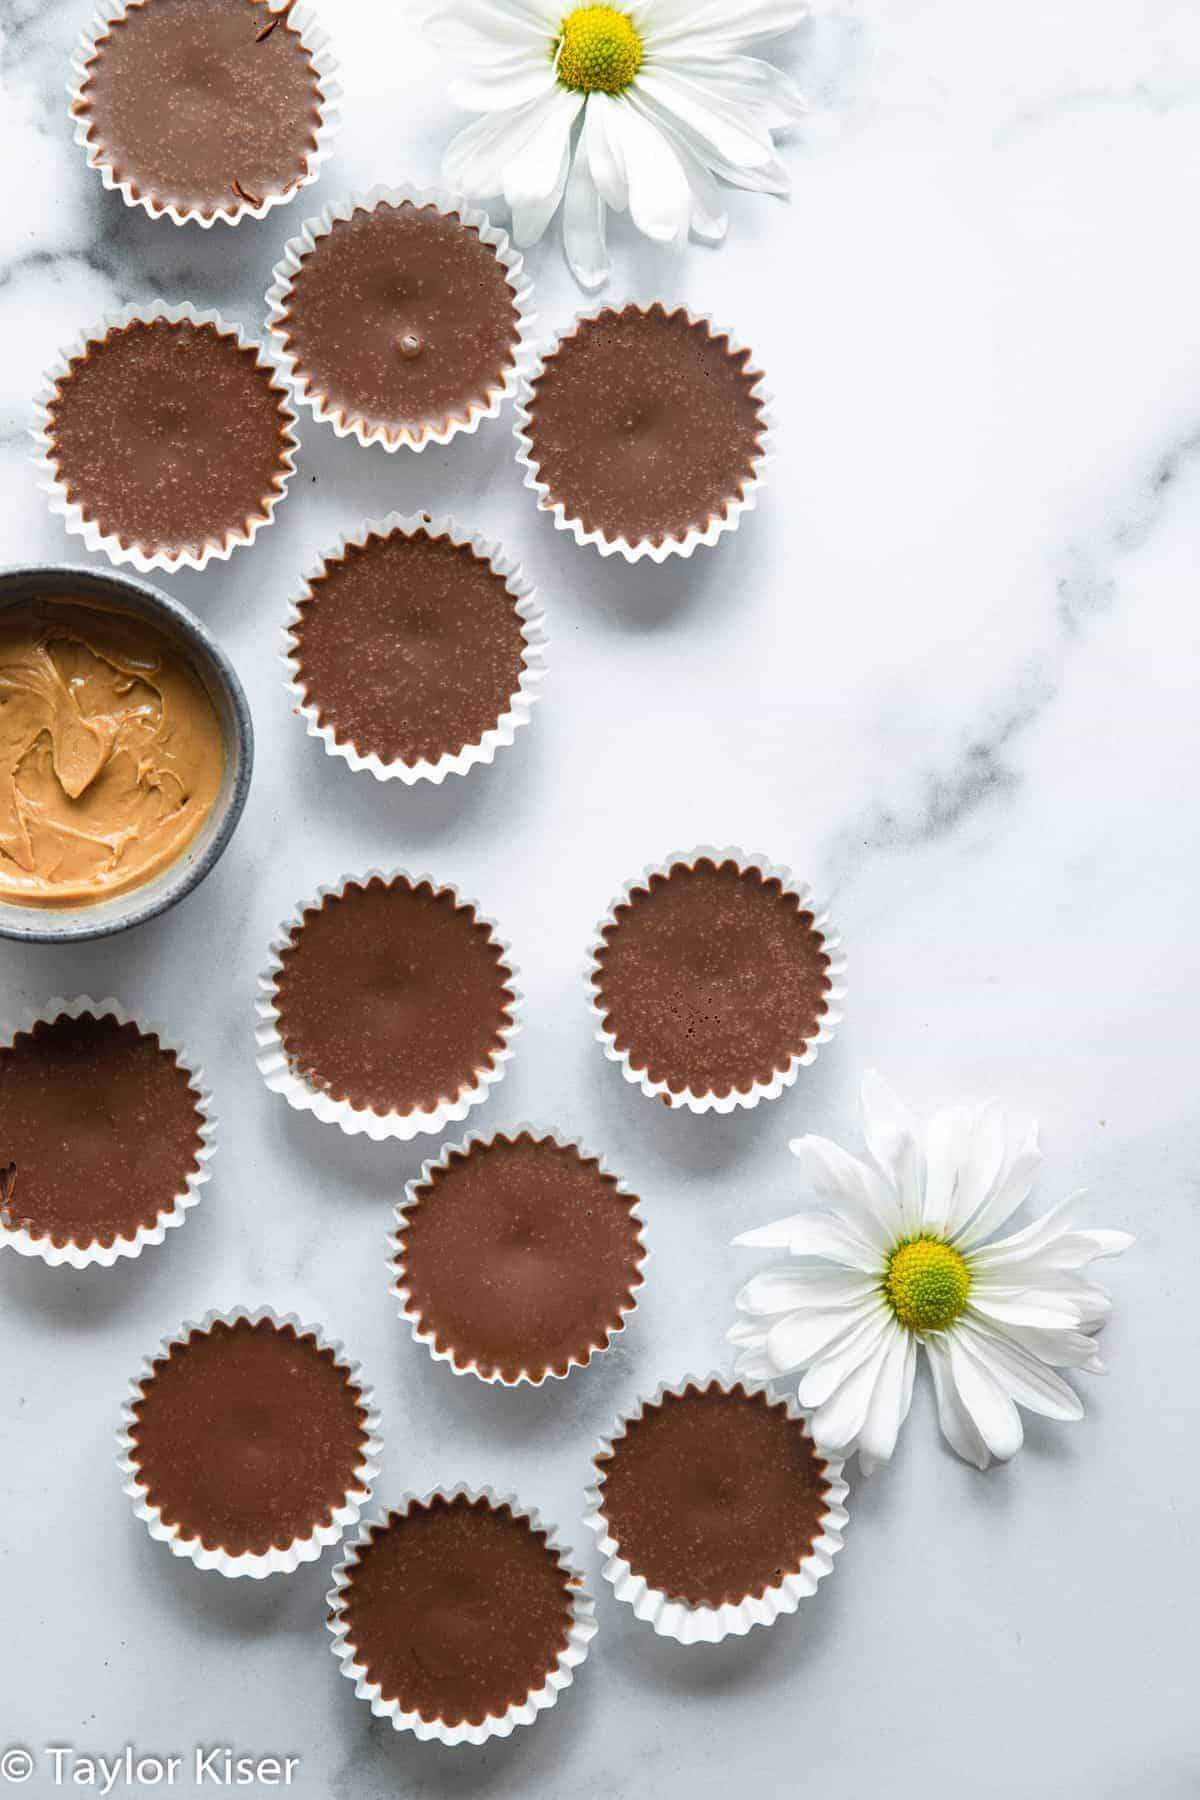 chocolate keto fat bombs on a table with flowers